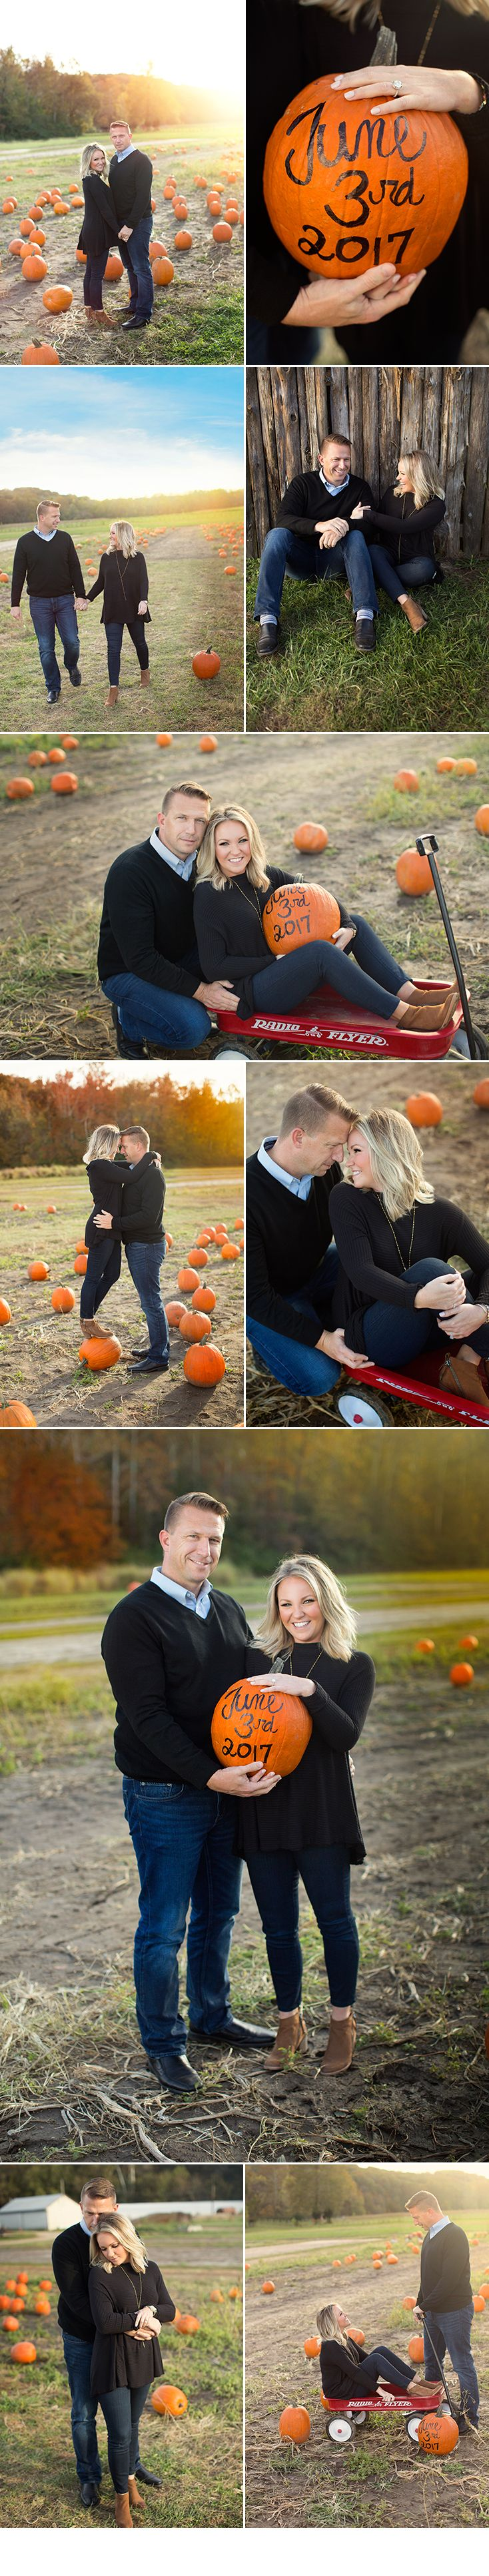 d-Squared Designs St. Louis, Missouri Engagement Photography. Fall engagement session, Pumpkin patch, save the date.